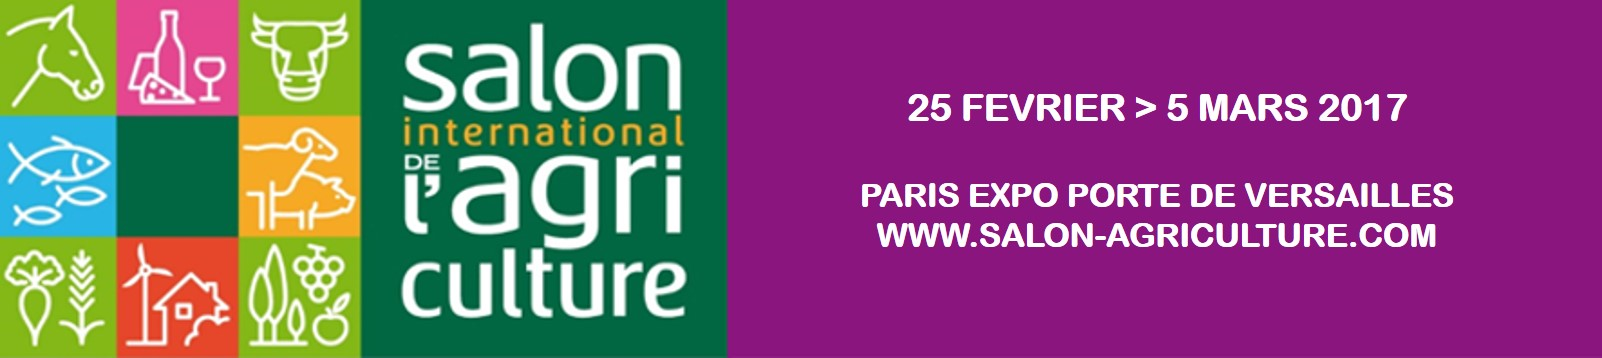 hebergement exposant salon international de l agriculture PARIS